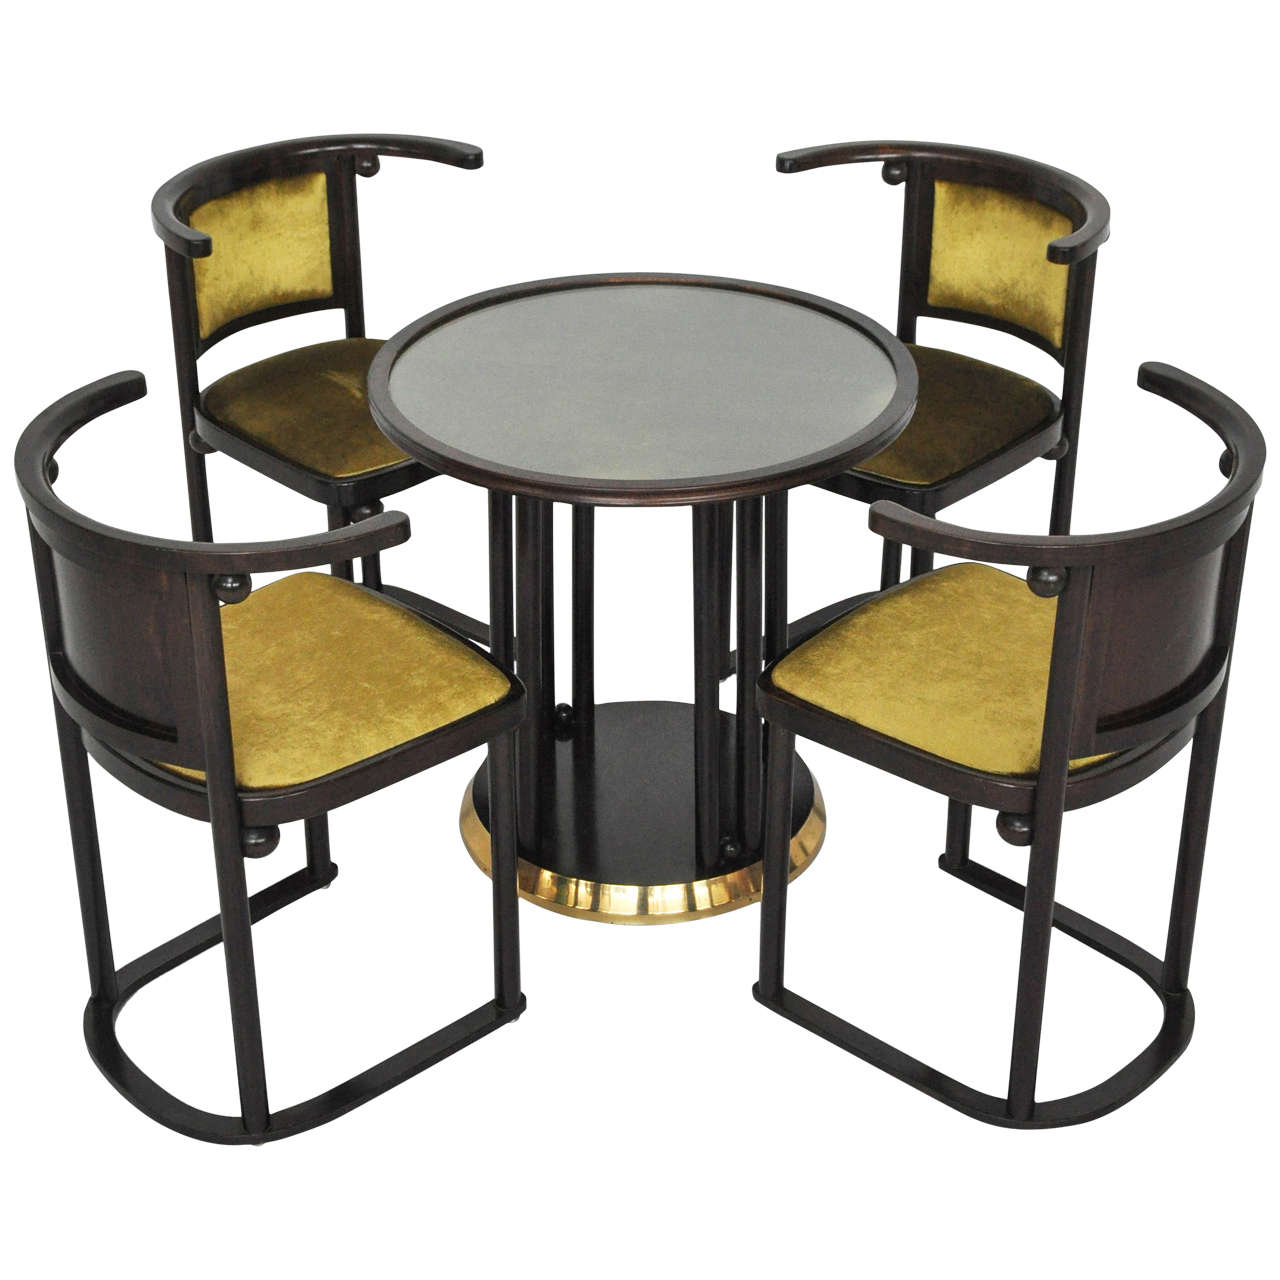 Josef Hoffmann Quot Fledermaus Quot Table And Chairs At 1stdibs